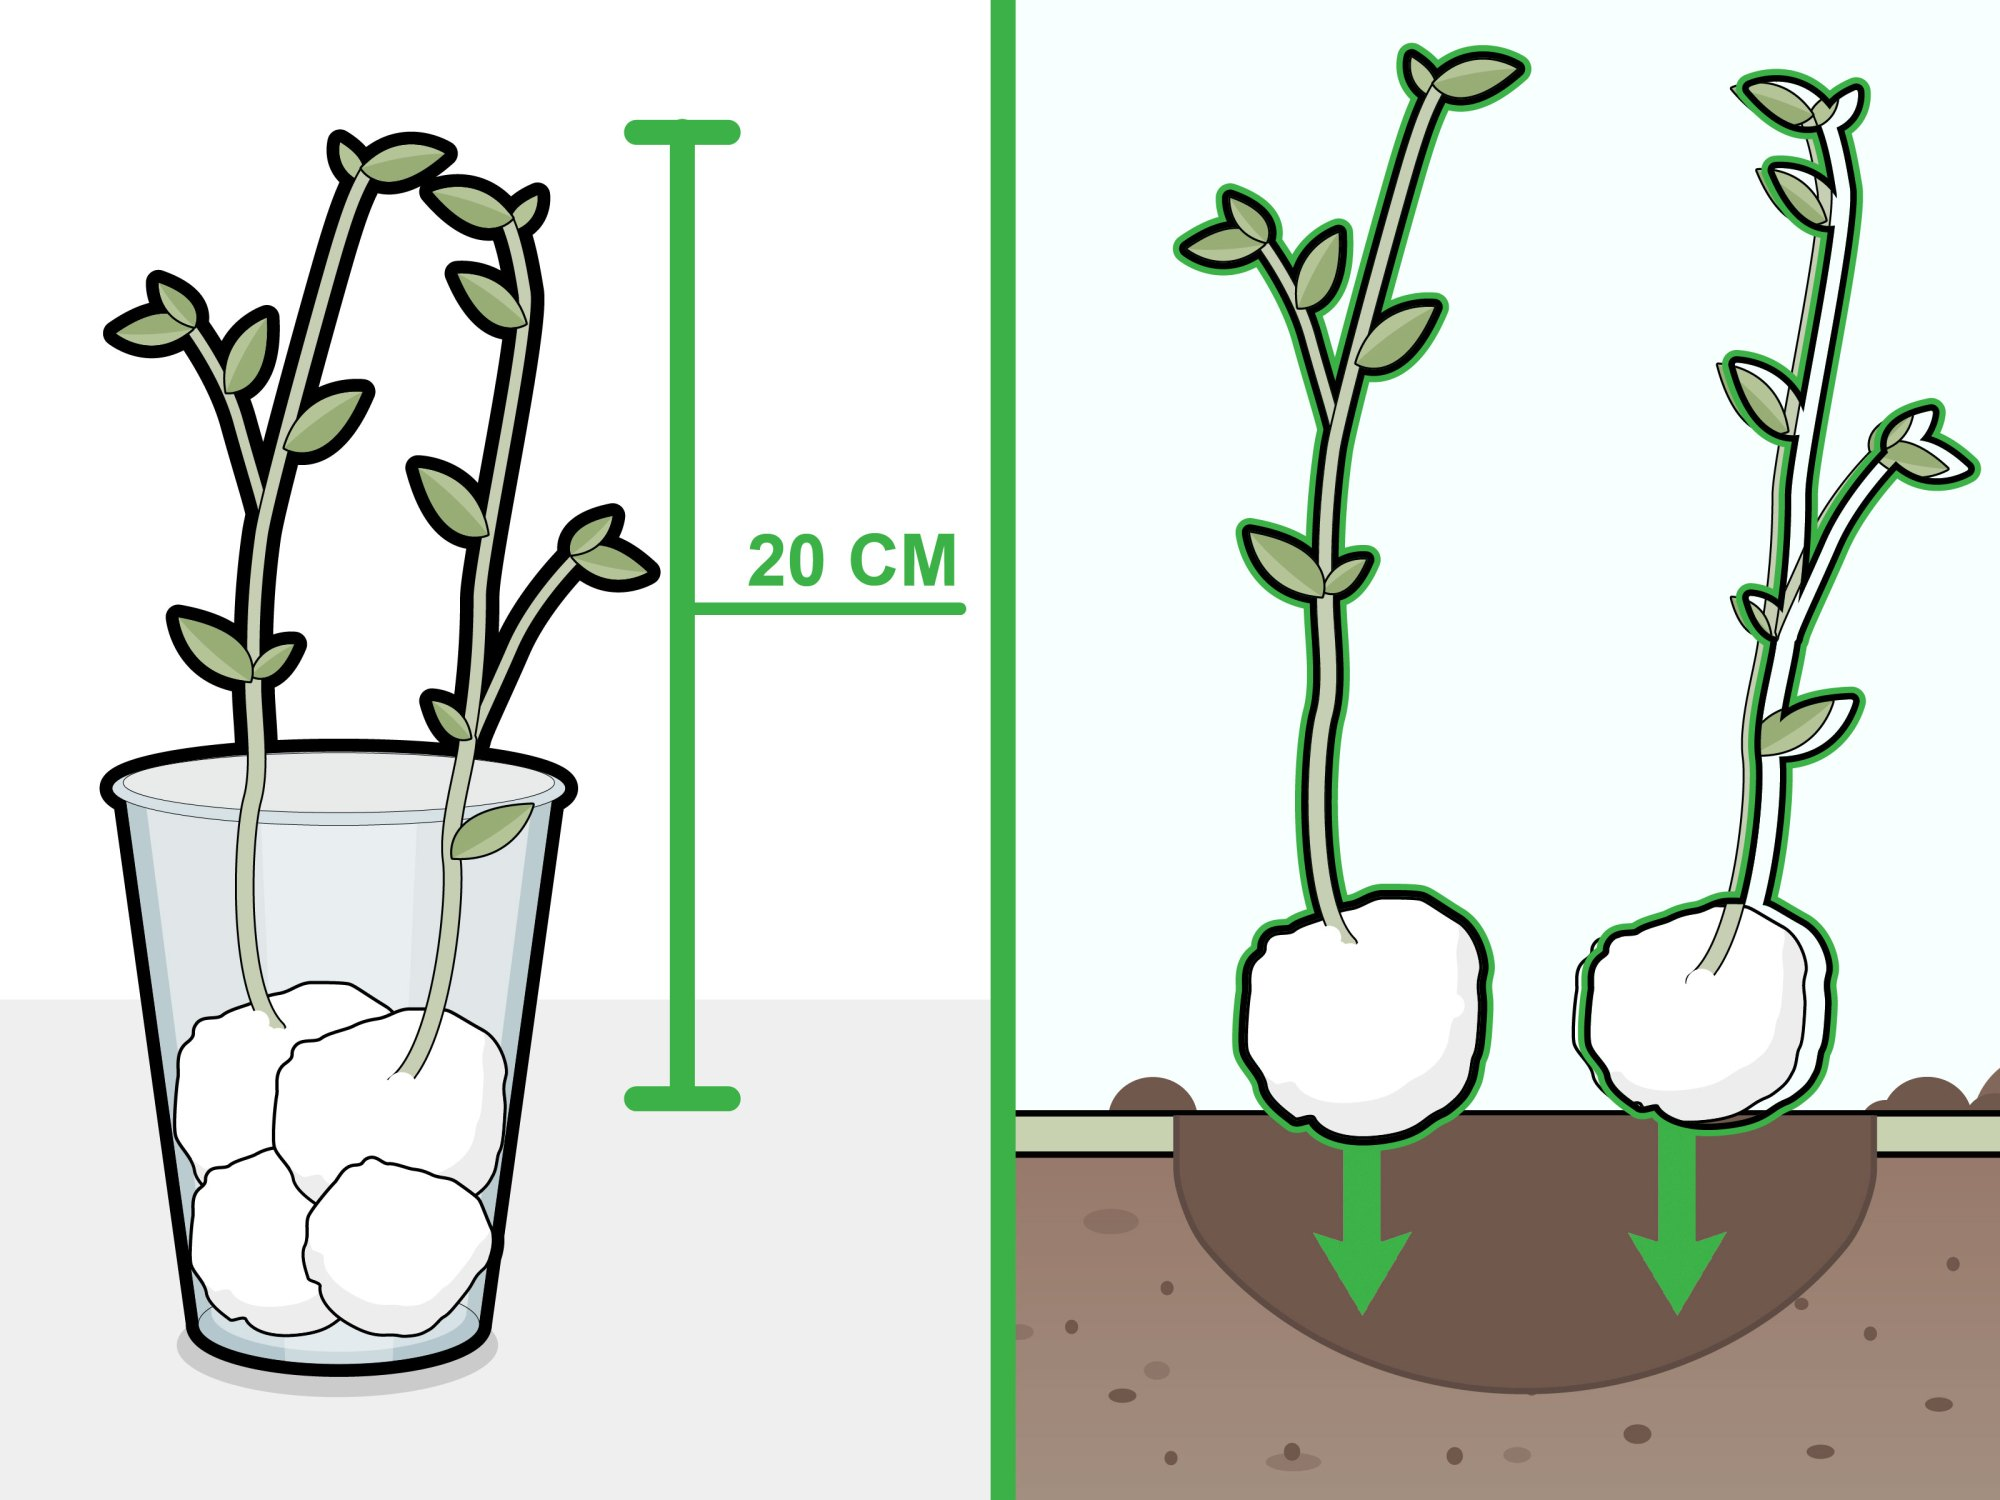 hight resolution of how to grow beans in cotton